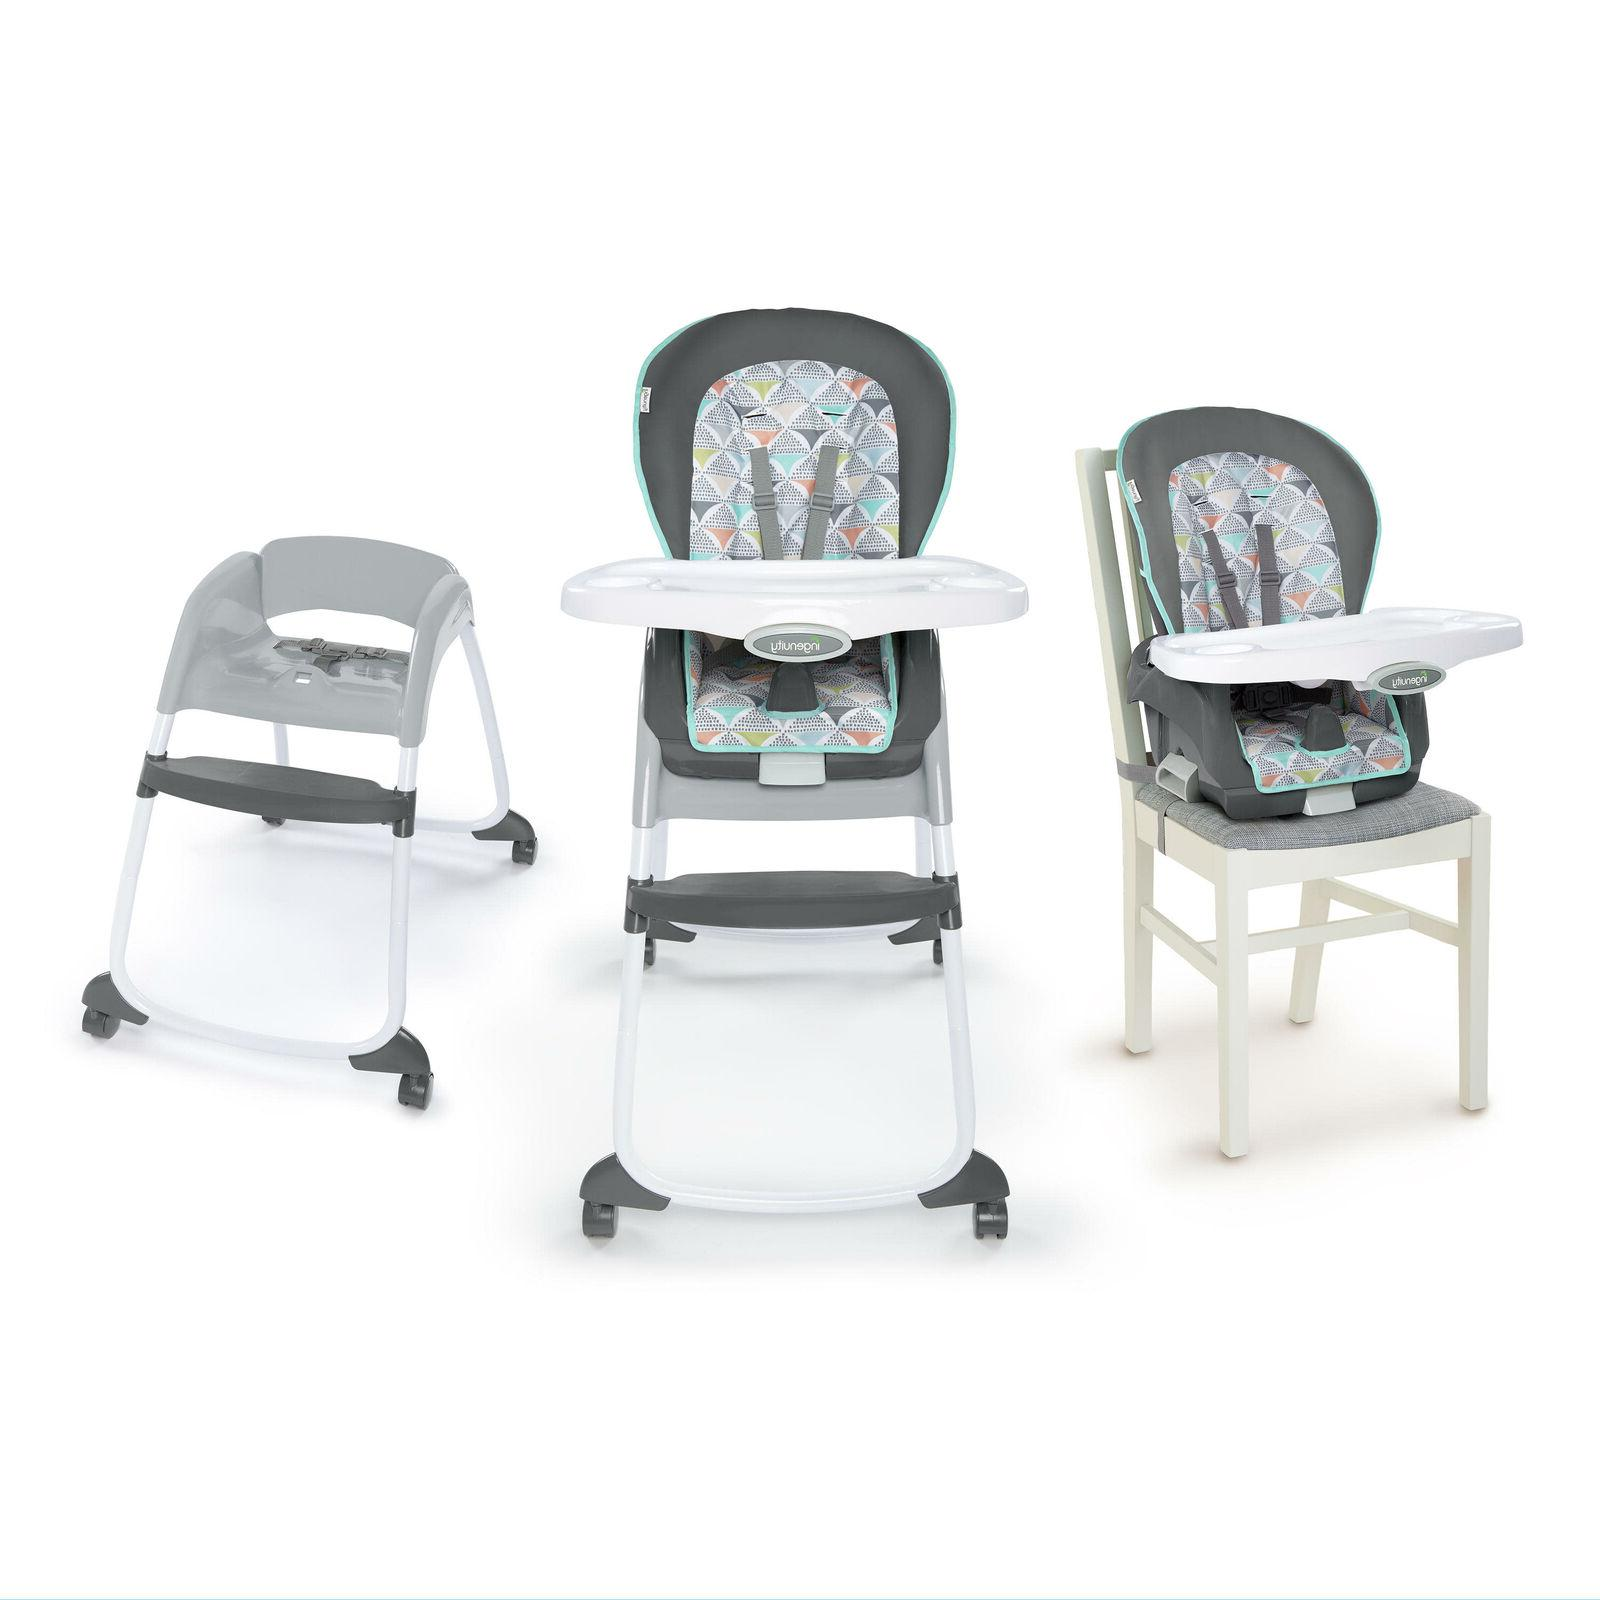 Ingenuity Trio 3n1 High Chair Baby Toddler Seat Booster Safe